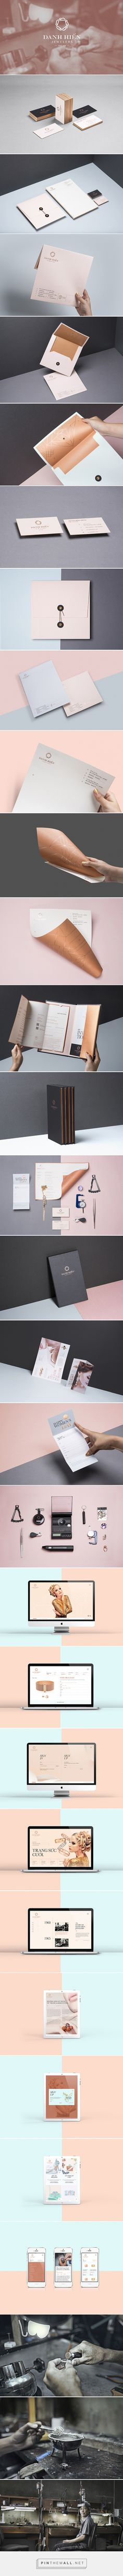 Danh Hien Jewelers | STATIONERY OVERDOSE